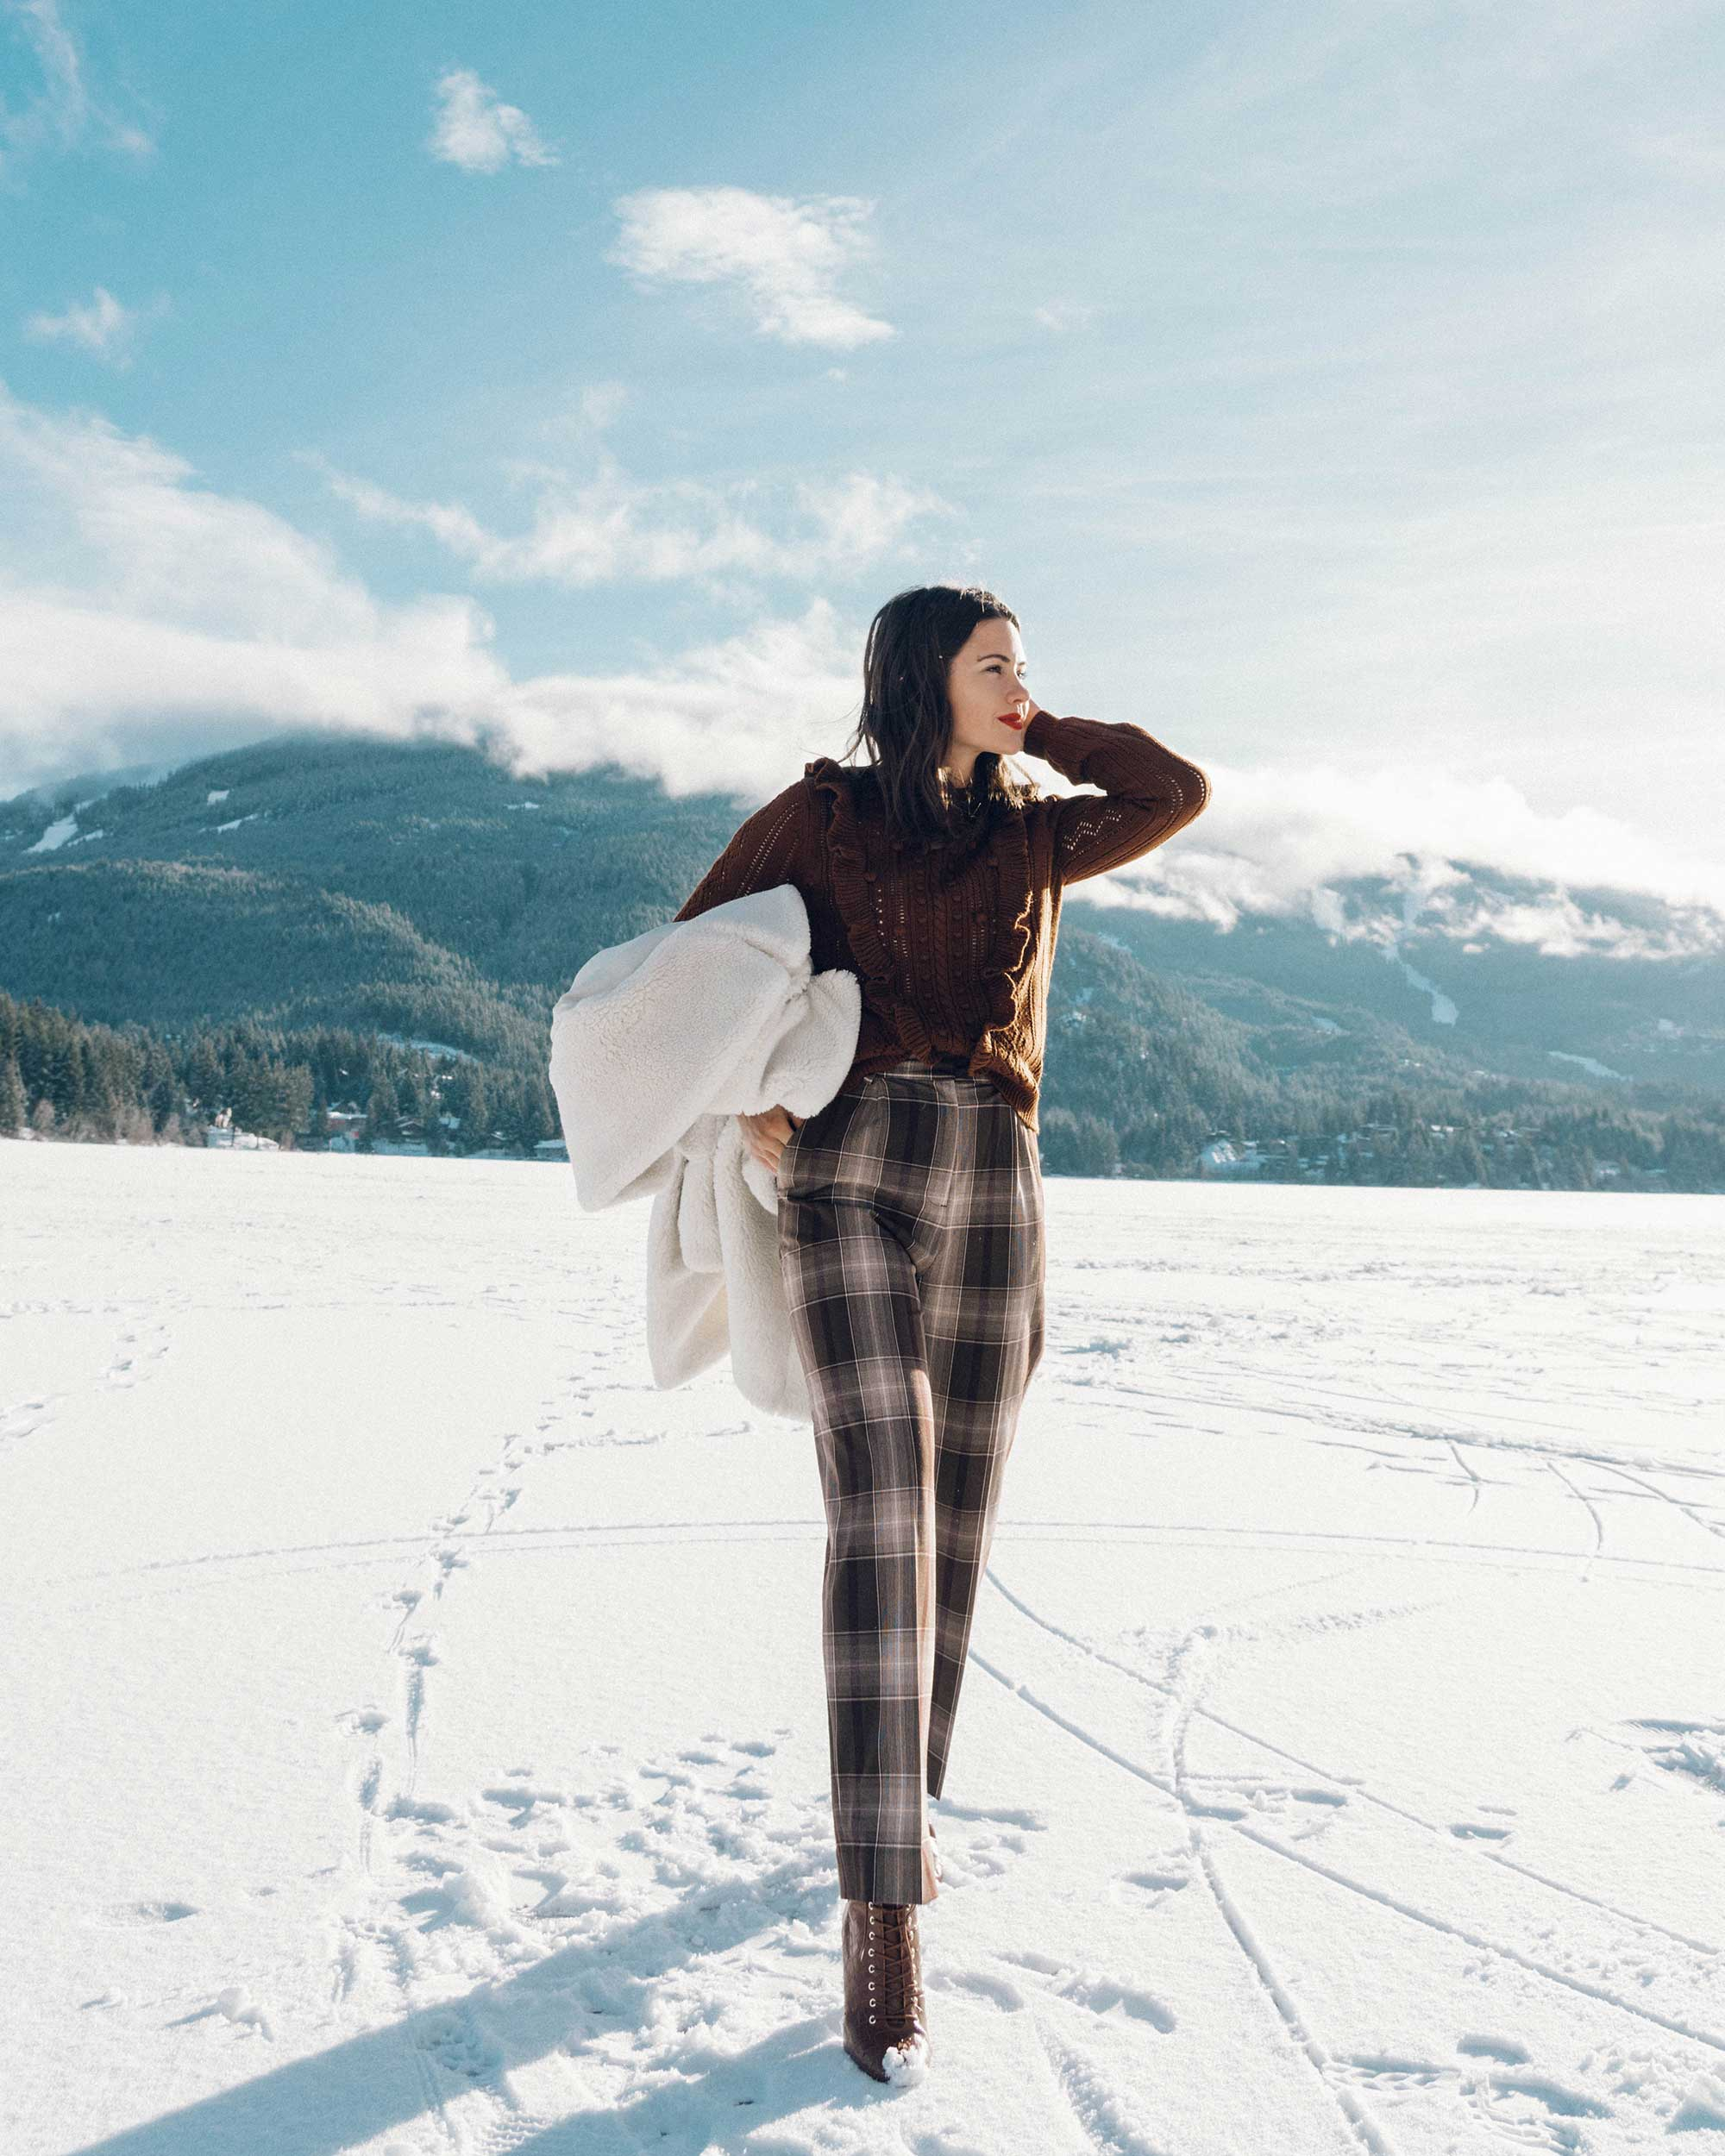 & Other Stories Tailored Brown Plaid Pants with pleats, white Faux Shearling Coat,  winter snow outfit, whistler canada7.jpg